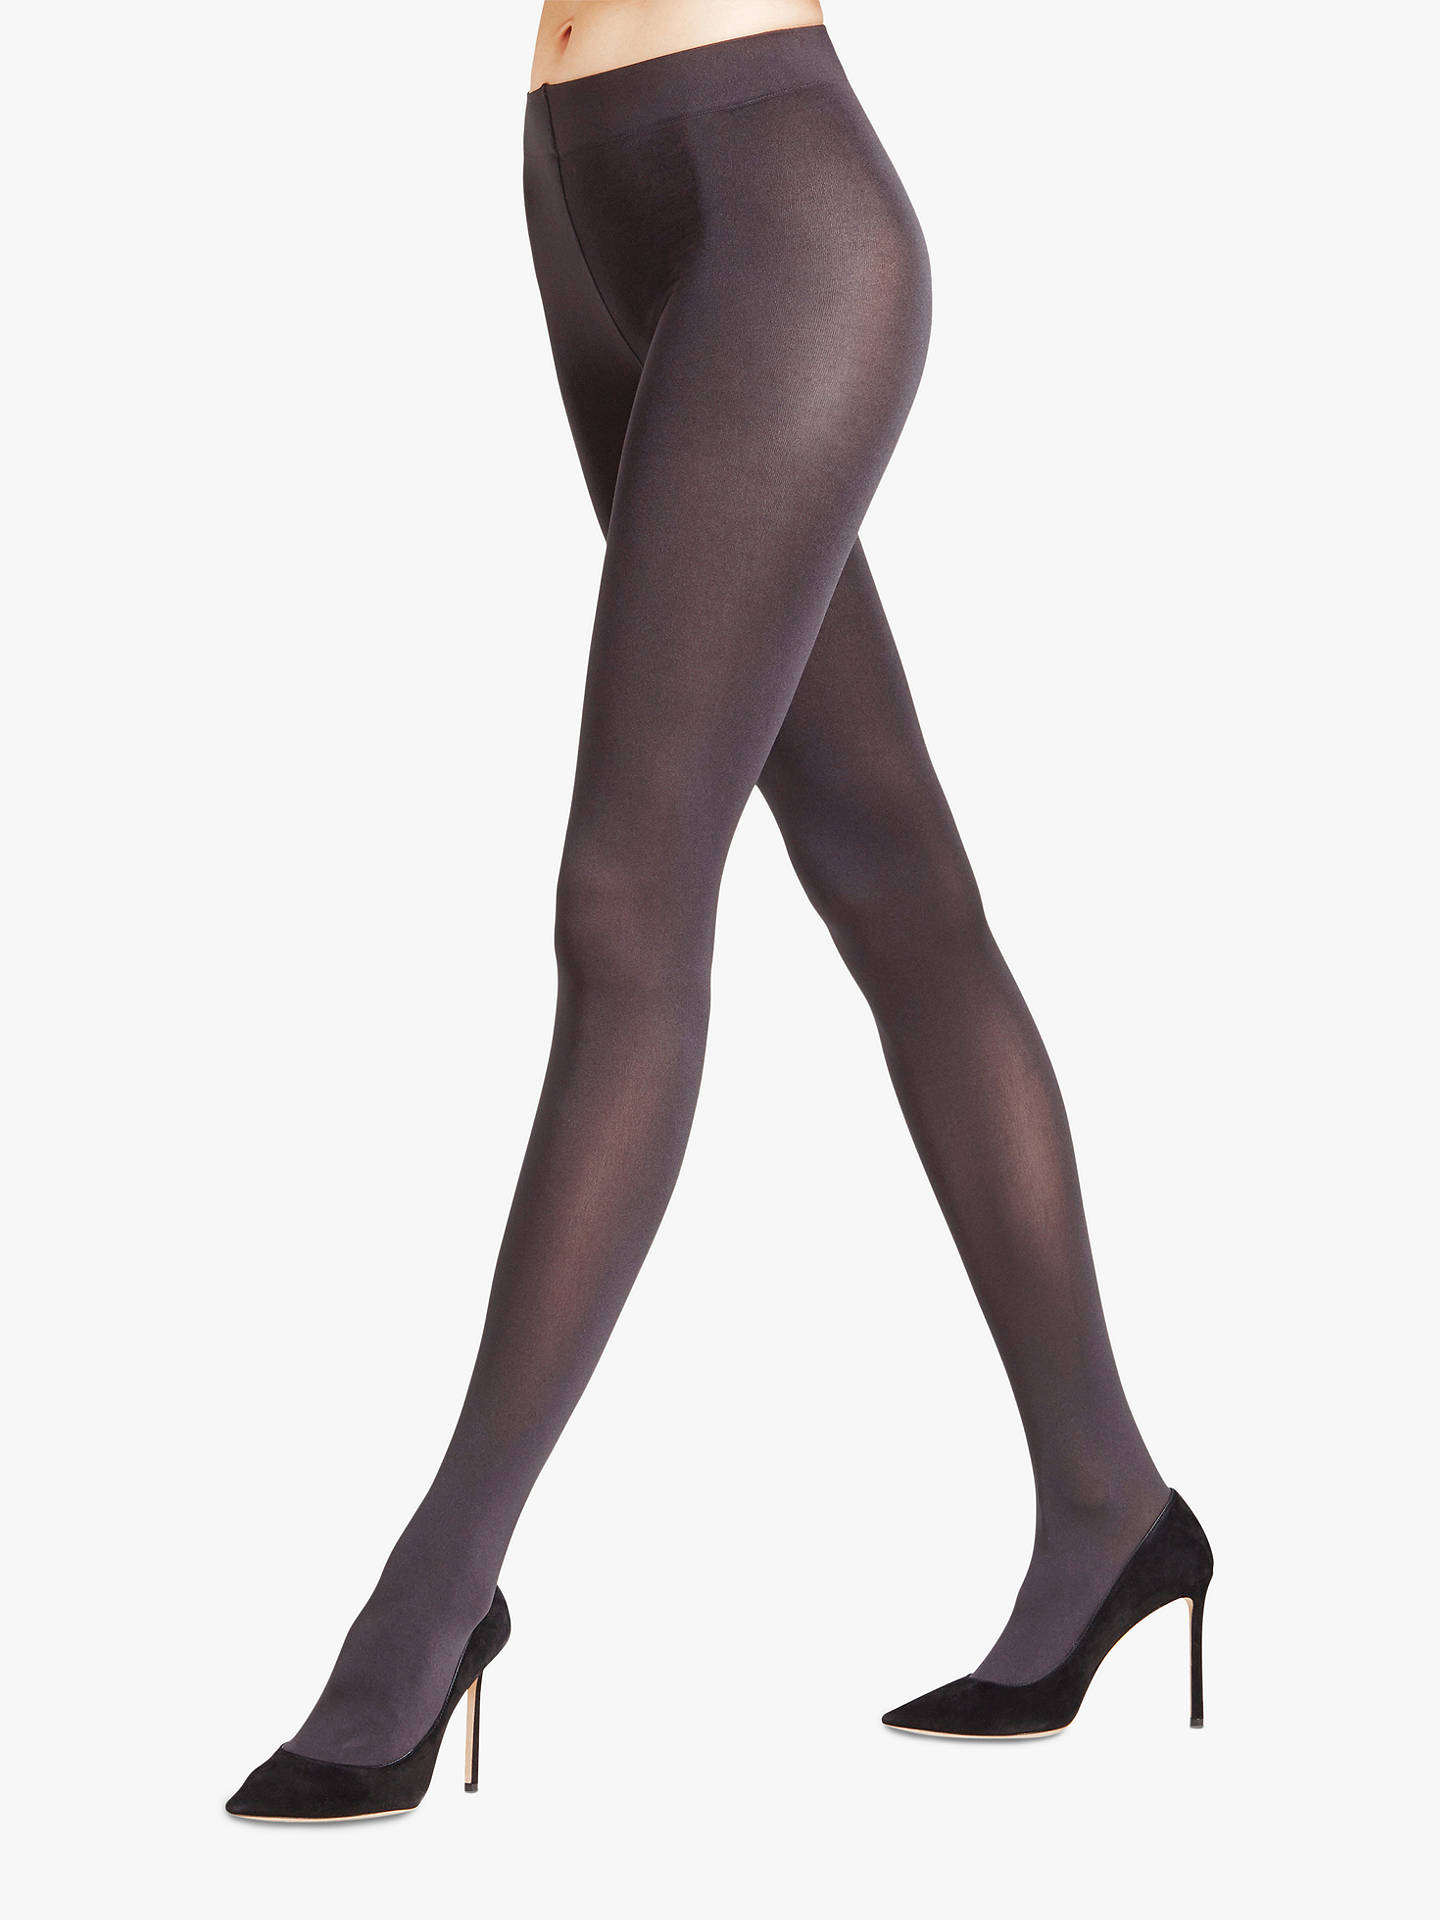 f3014c75c09 FALKE Seidenglatt Shiny 80 Denier Tights, Anthracite